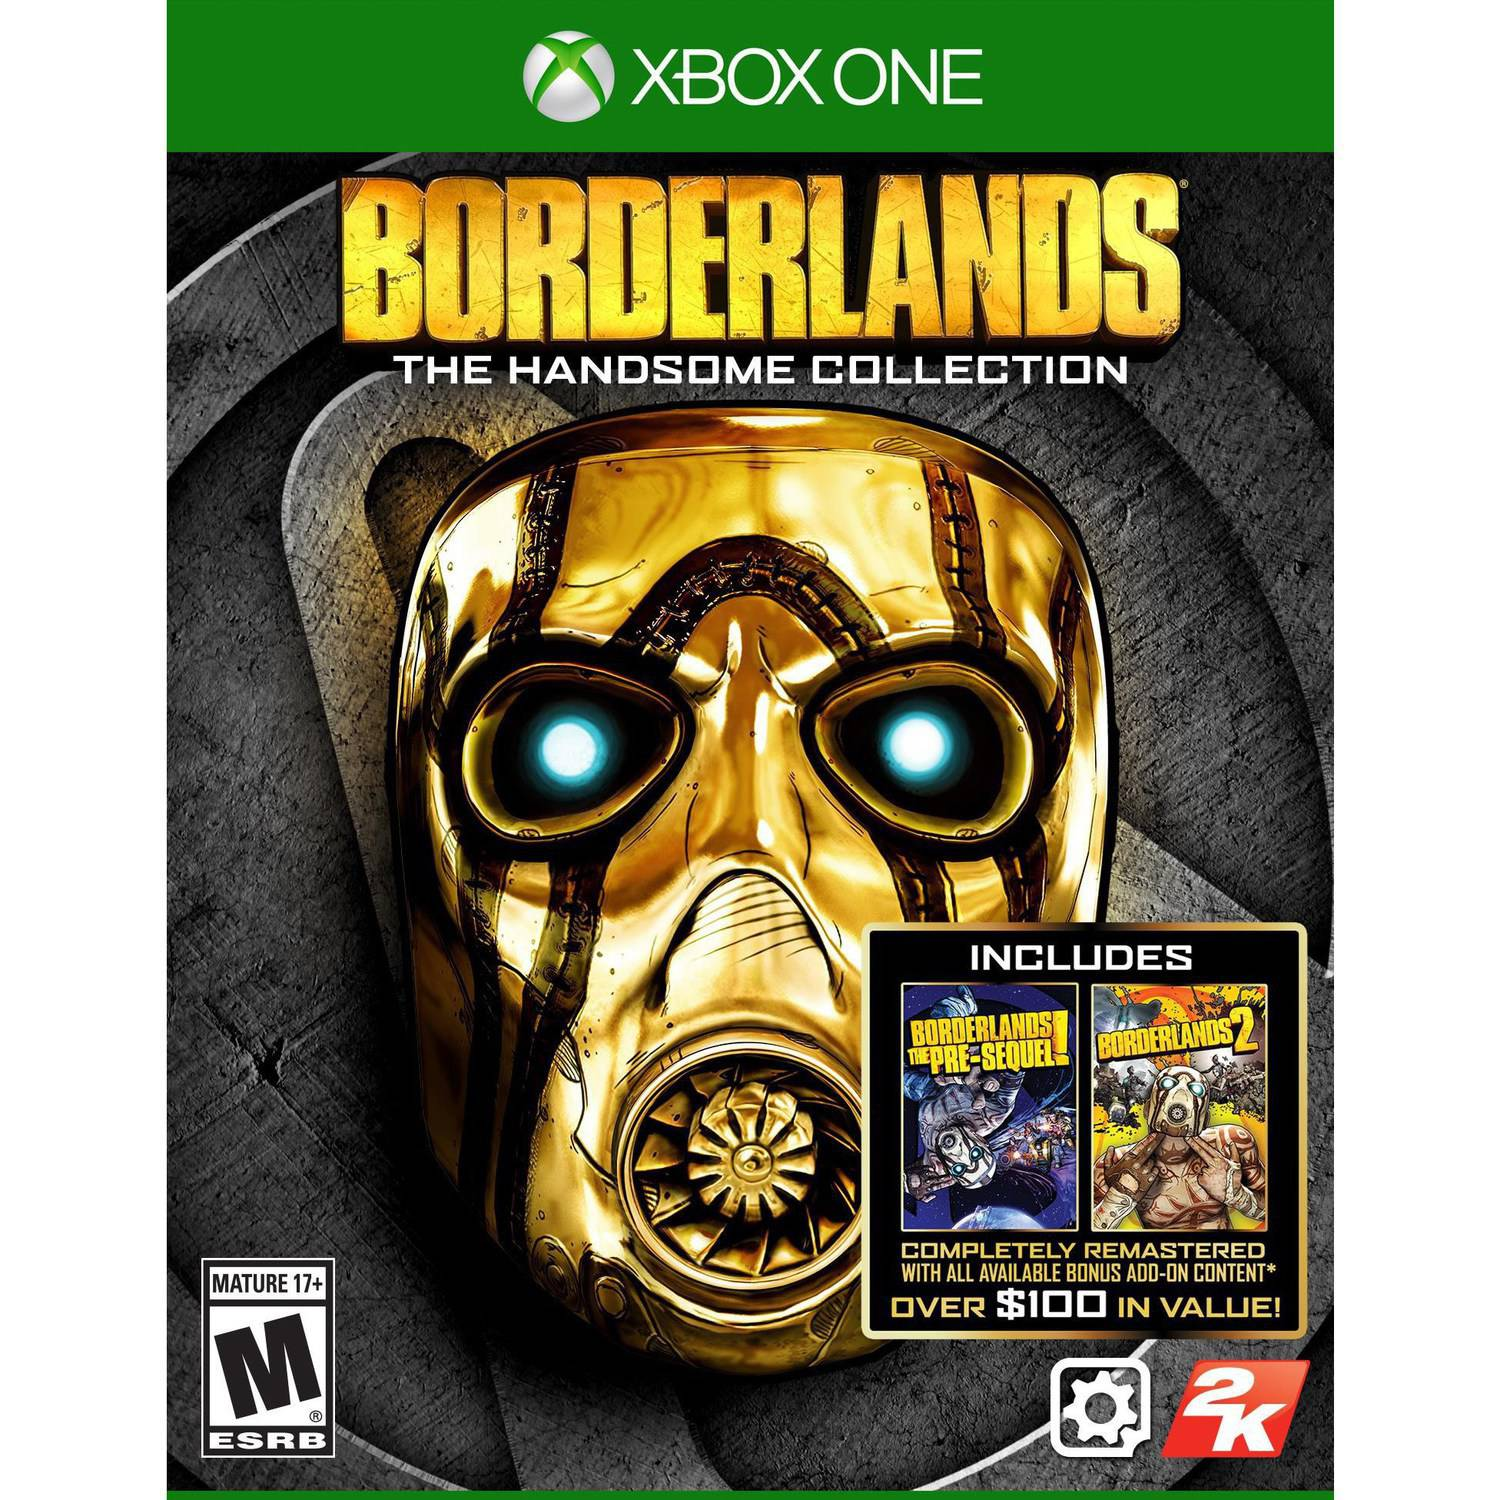 BorderlaDS HaDSome Collection (Xbox One) - Pre-Owned